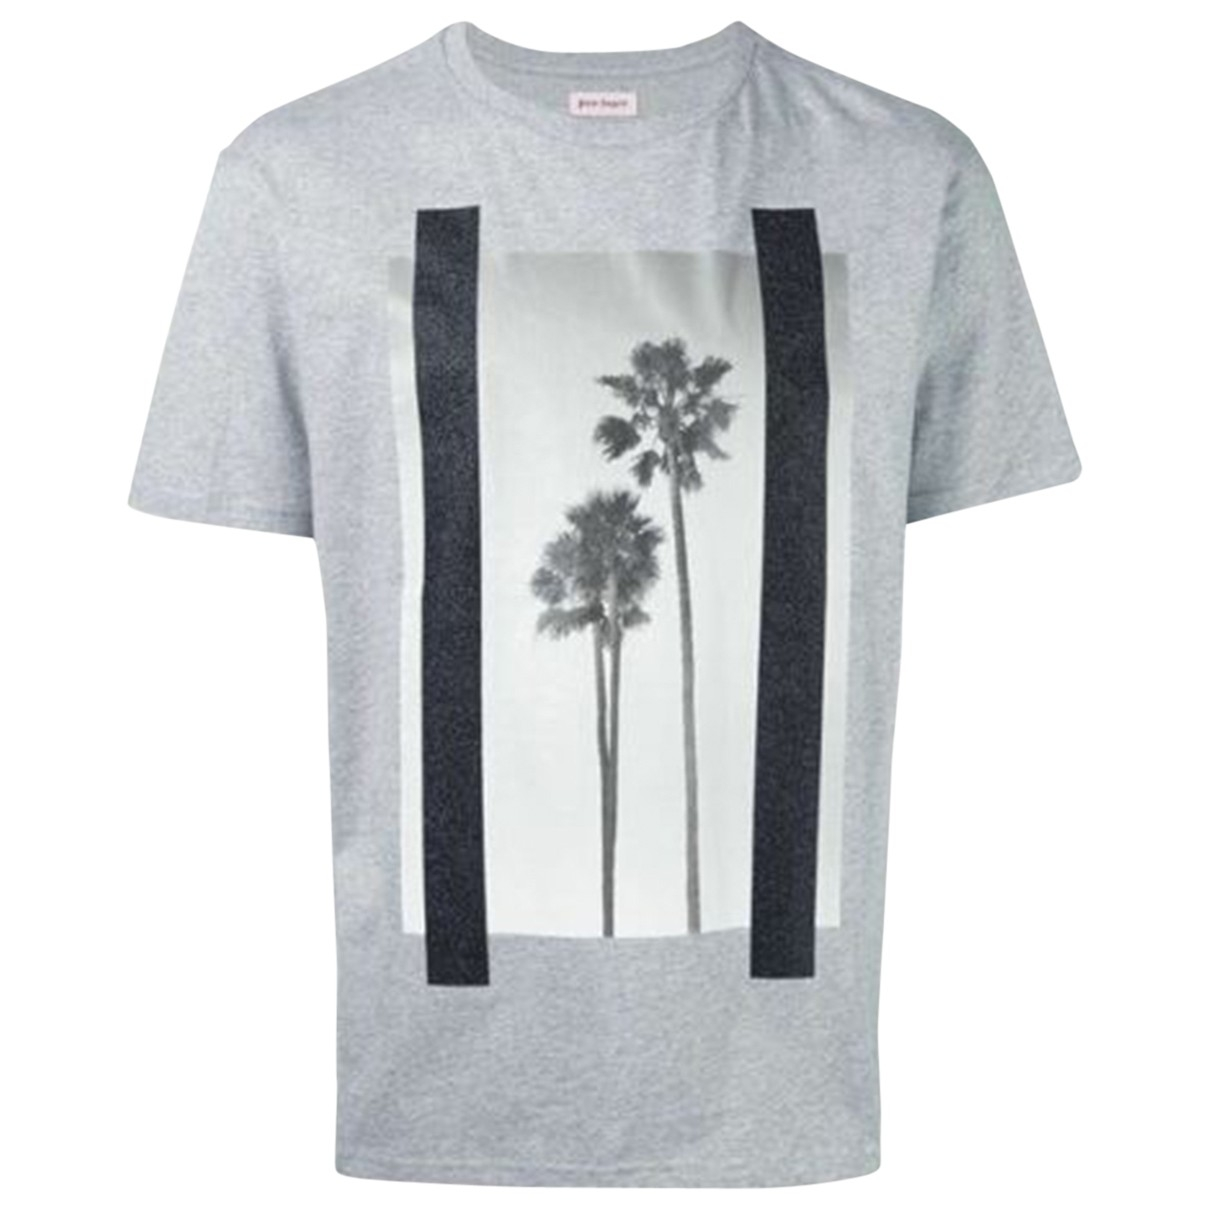 Palm Angels \N Grey Cotton  top for Women L International